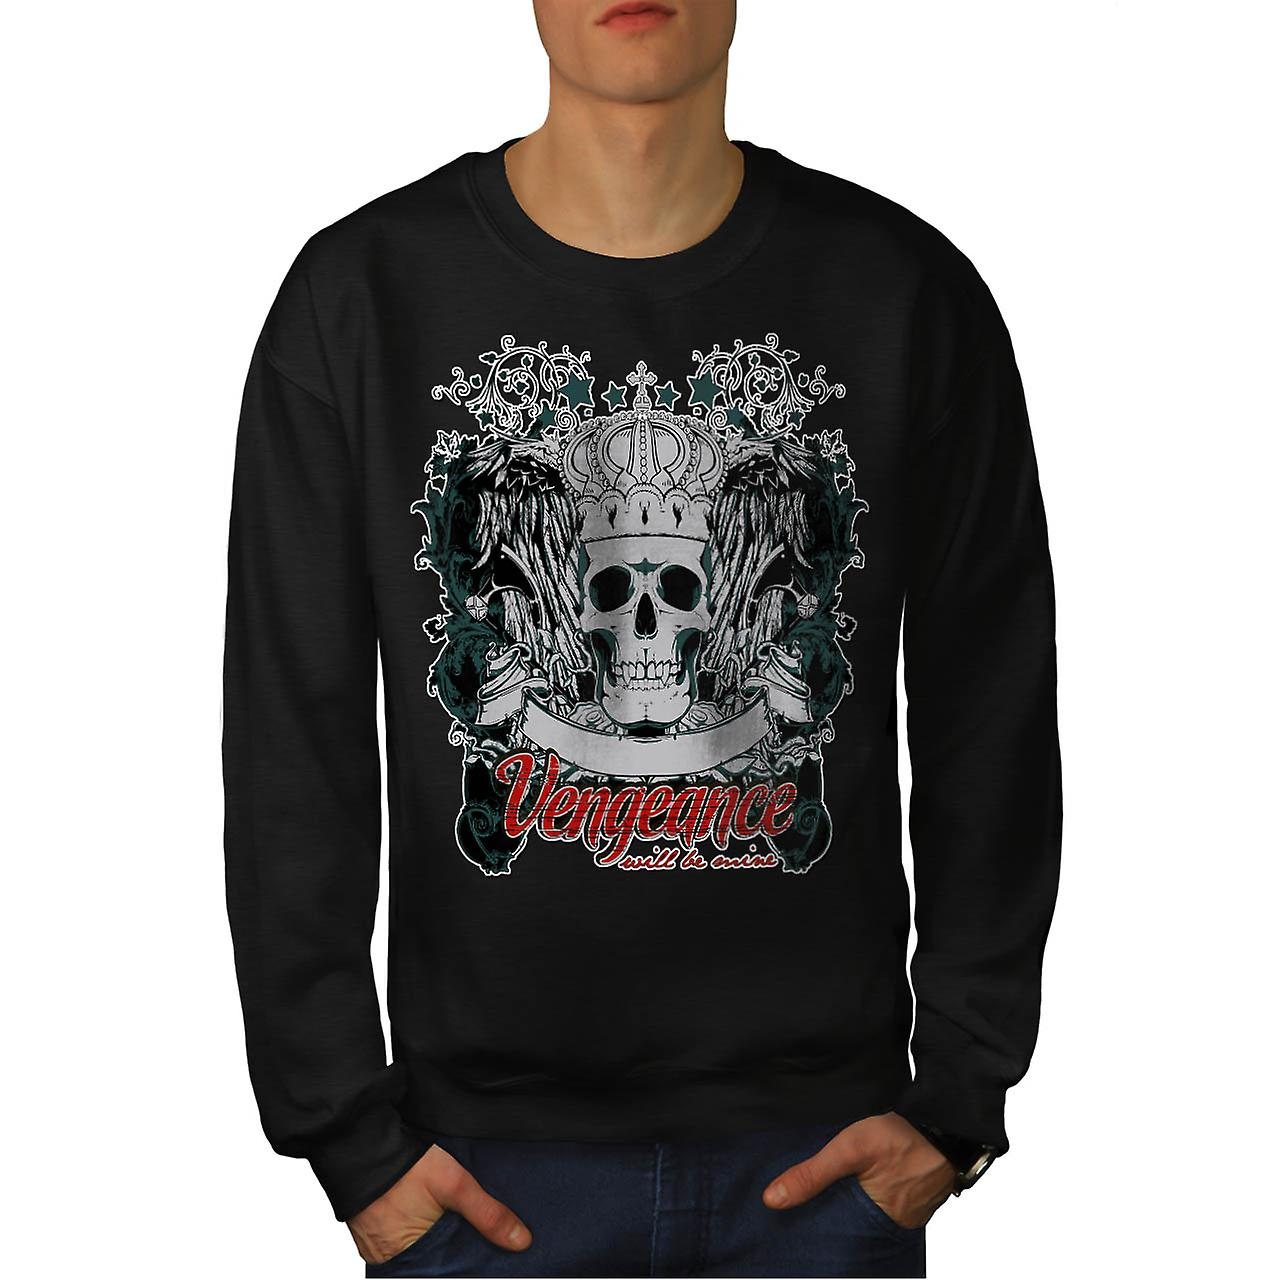 Vengeance Revenge Eye Thrones Men Black Sweatshirt | Wellcoda